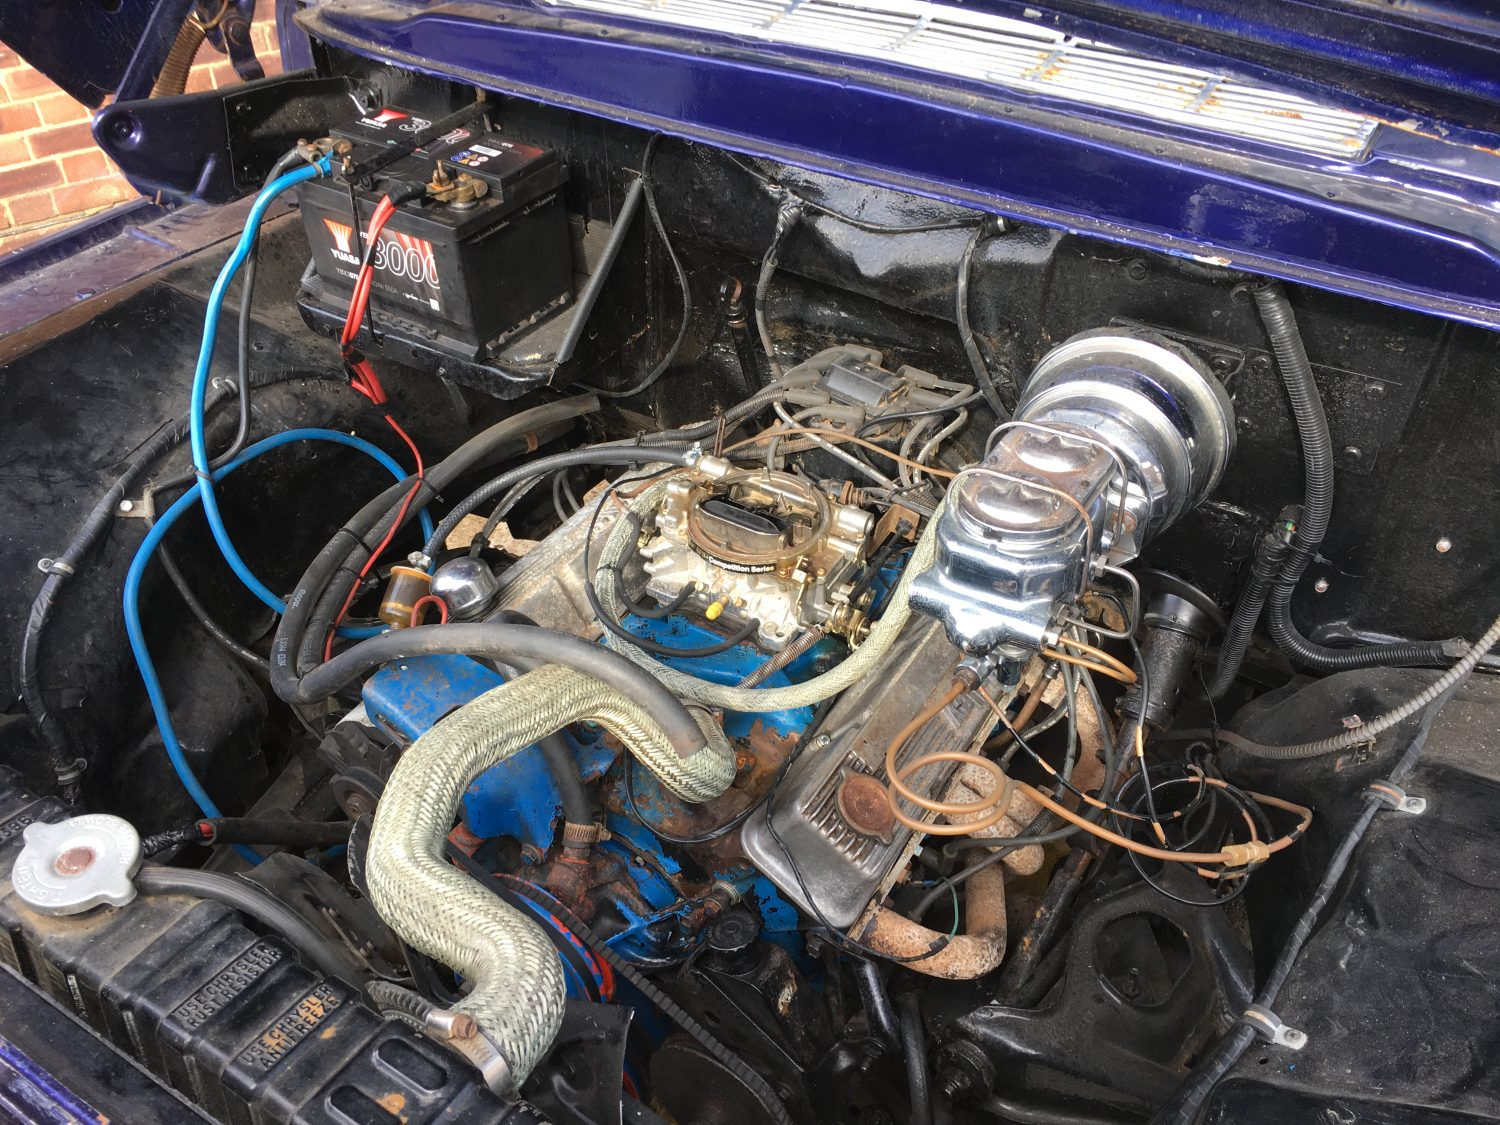 1967 Mustang Wiper Switch Wiring To Painless Wiring Harness Ford